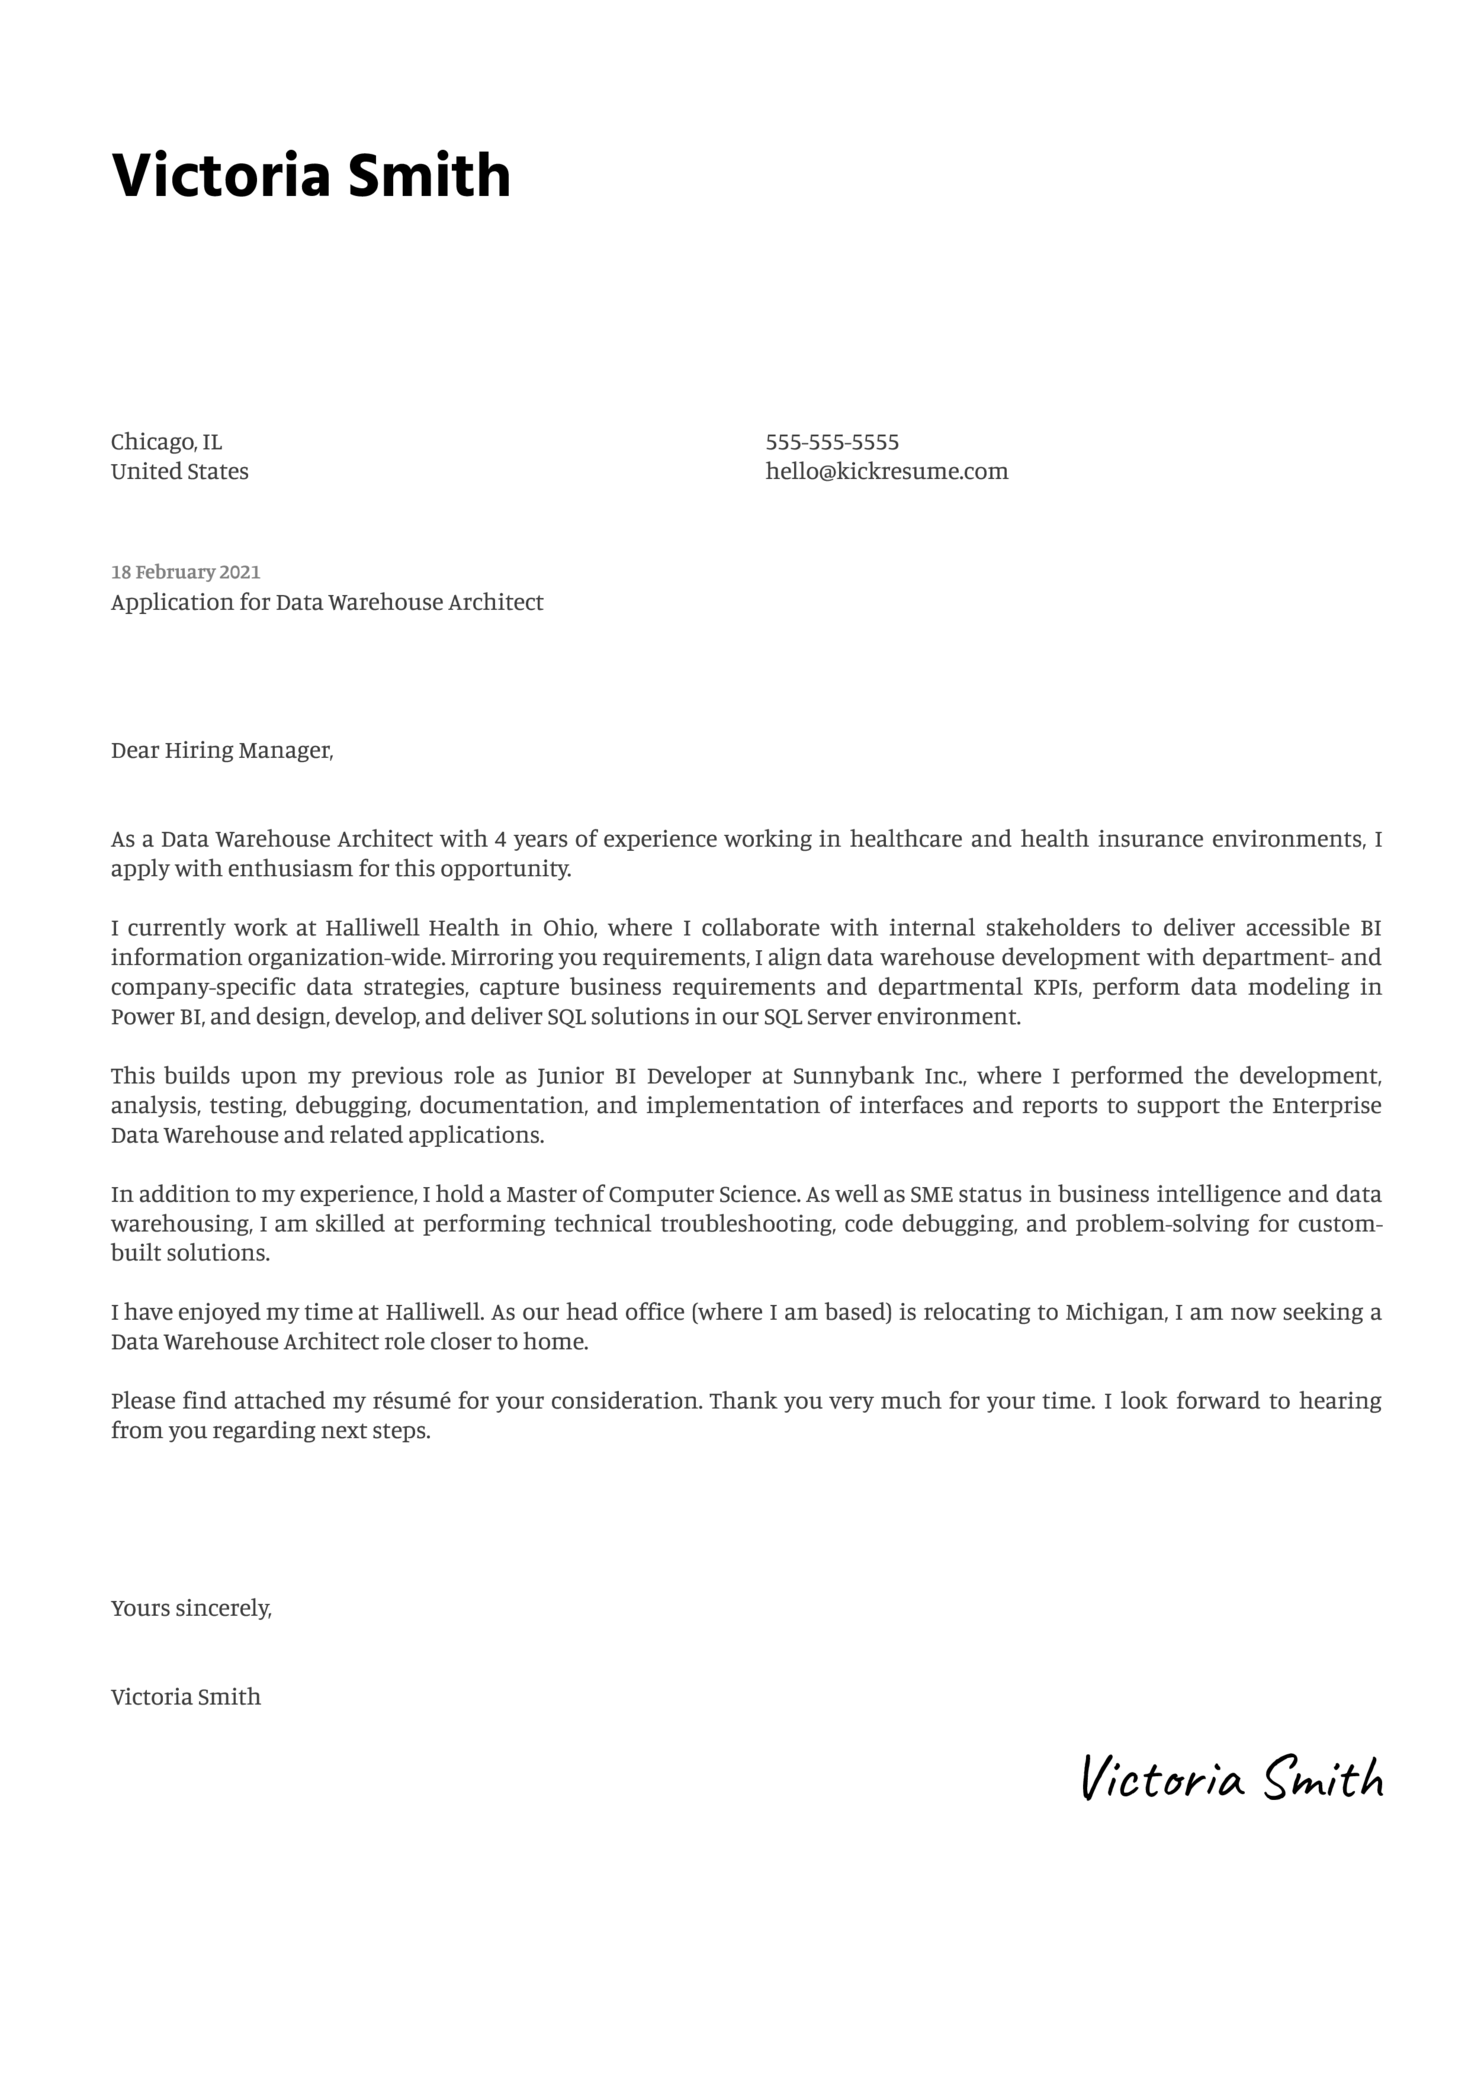 Data Warehouse Architect Cover Letter Template